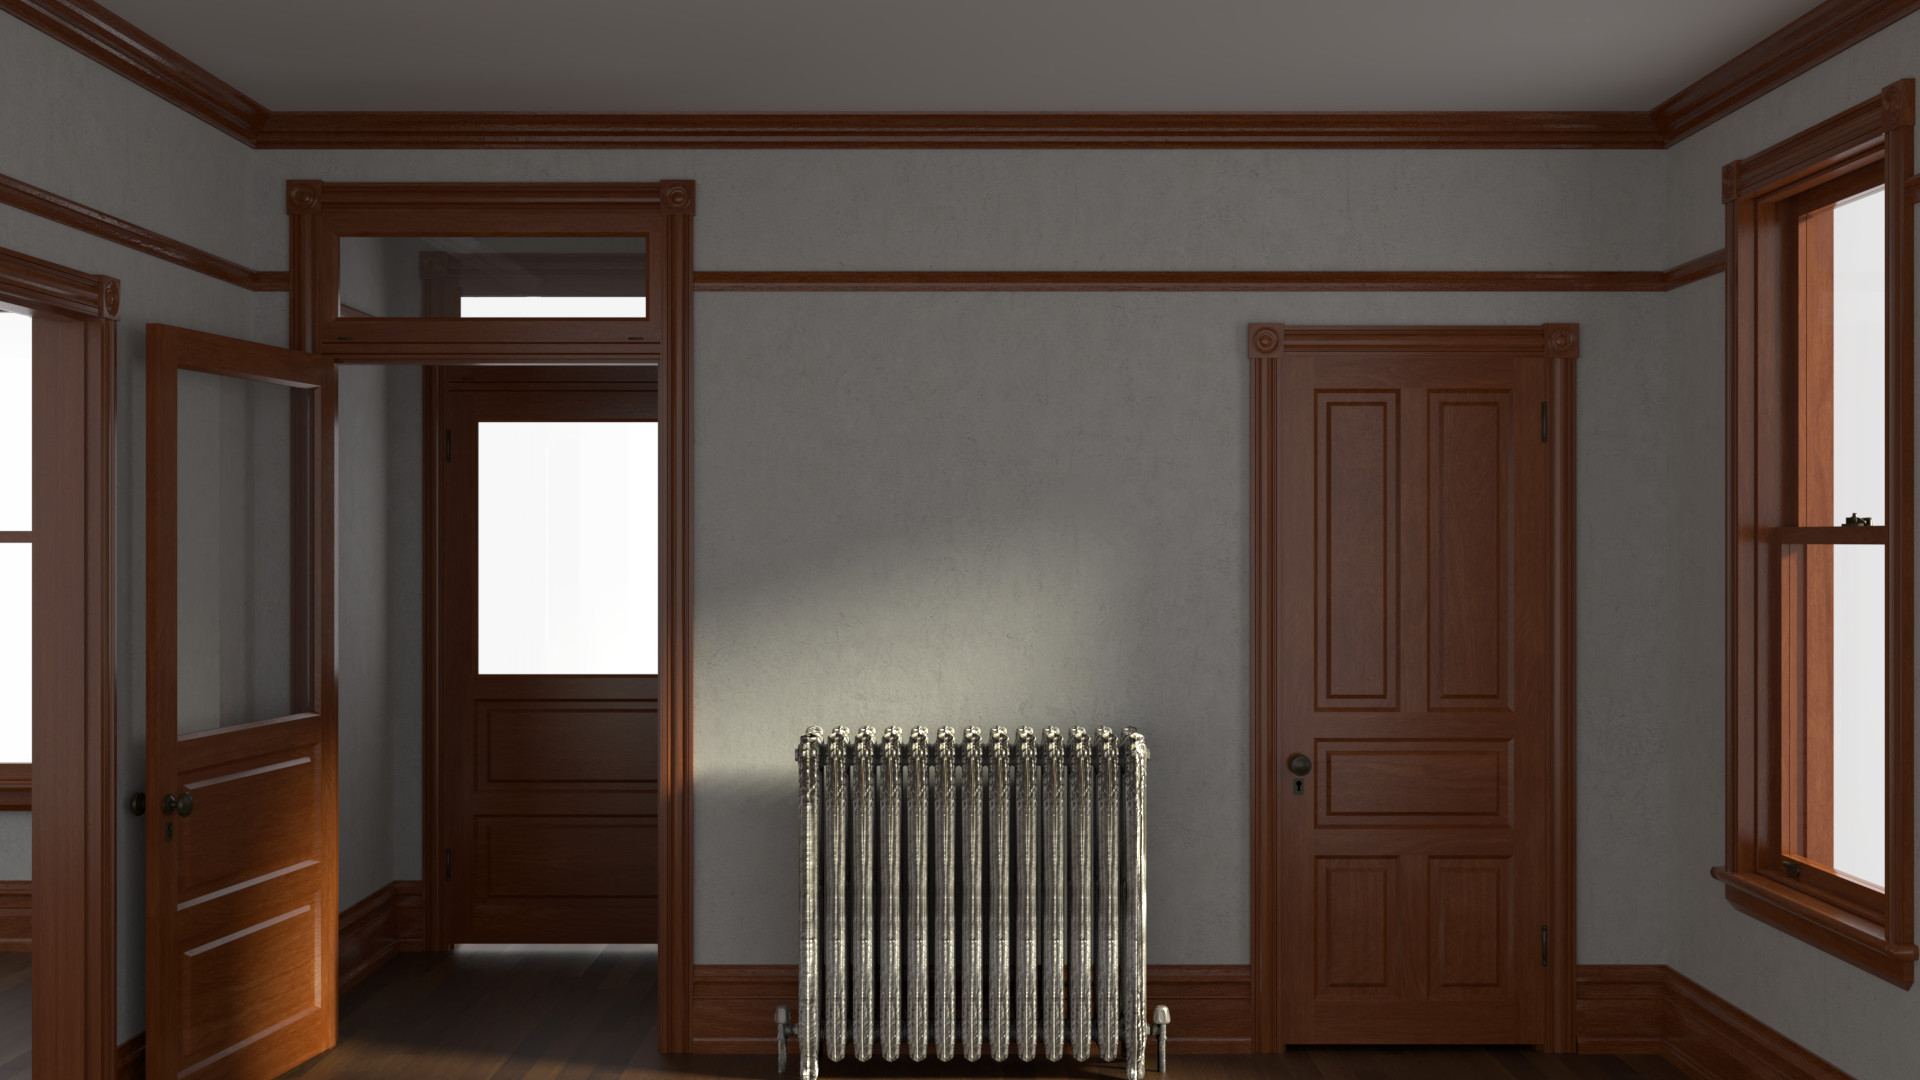 I modeled this room after my own foyer. It uses both this door set and the window set mentioned in the project description. That radiator was a great accomplishment when I made it... oh well.